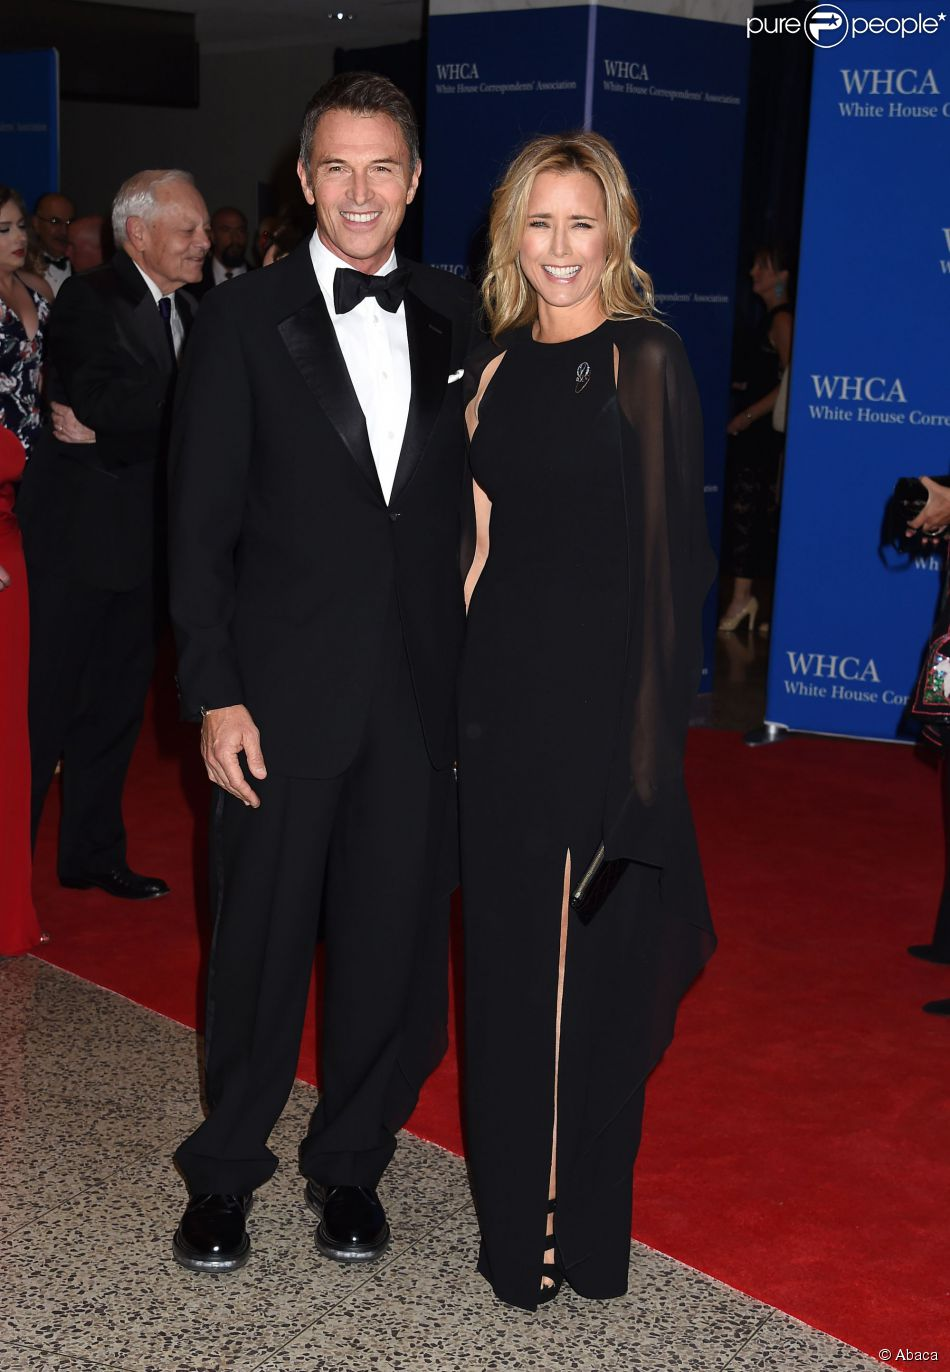 Tim Daly & Tea Leoni sur le tapis rouge de la soirée White House Correspondent's Association Gala au Washington Hilton à Washington, le 25 avril 2015